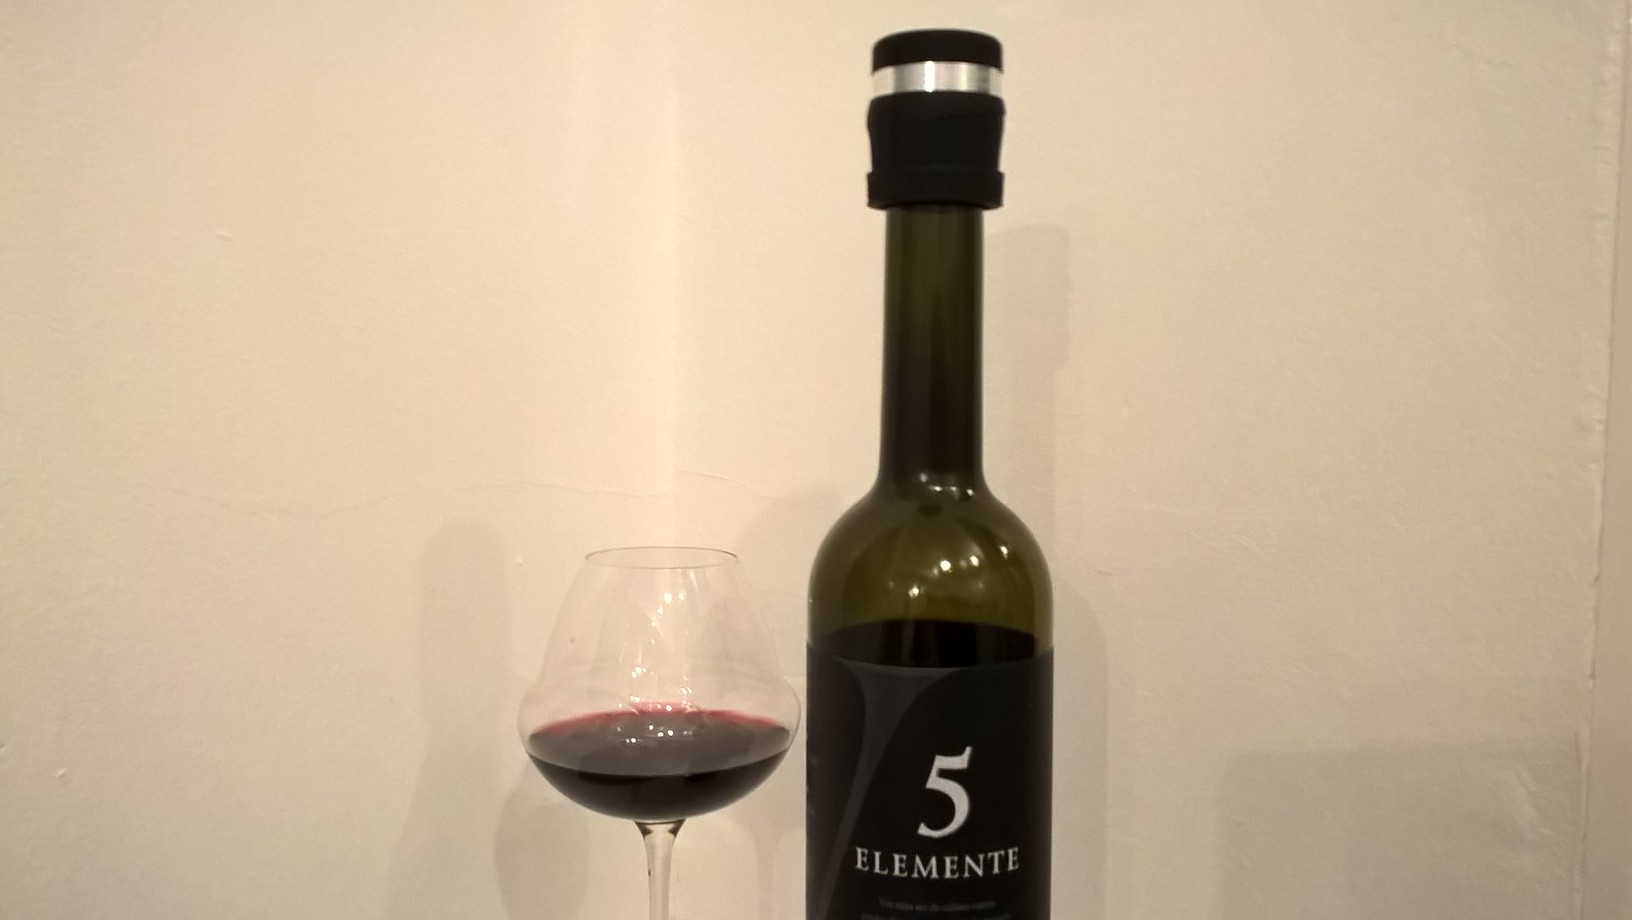 We tested it on one of our favourite red wines, the 5 Elemente 2013 from Equinox. The wine was still gluggable after 8 days